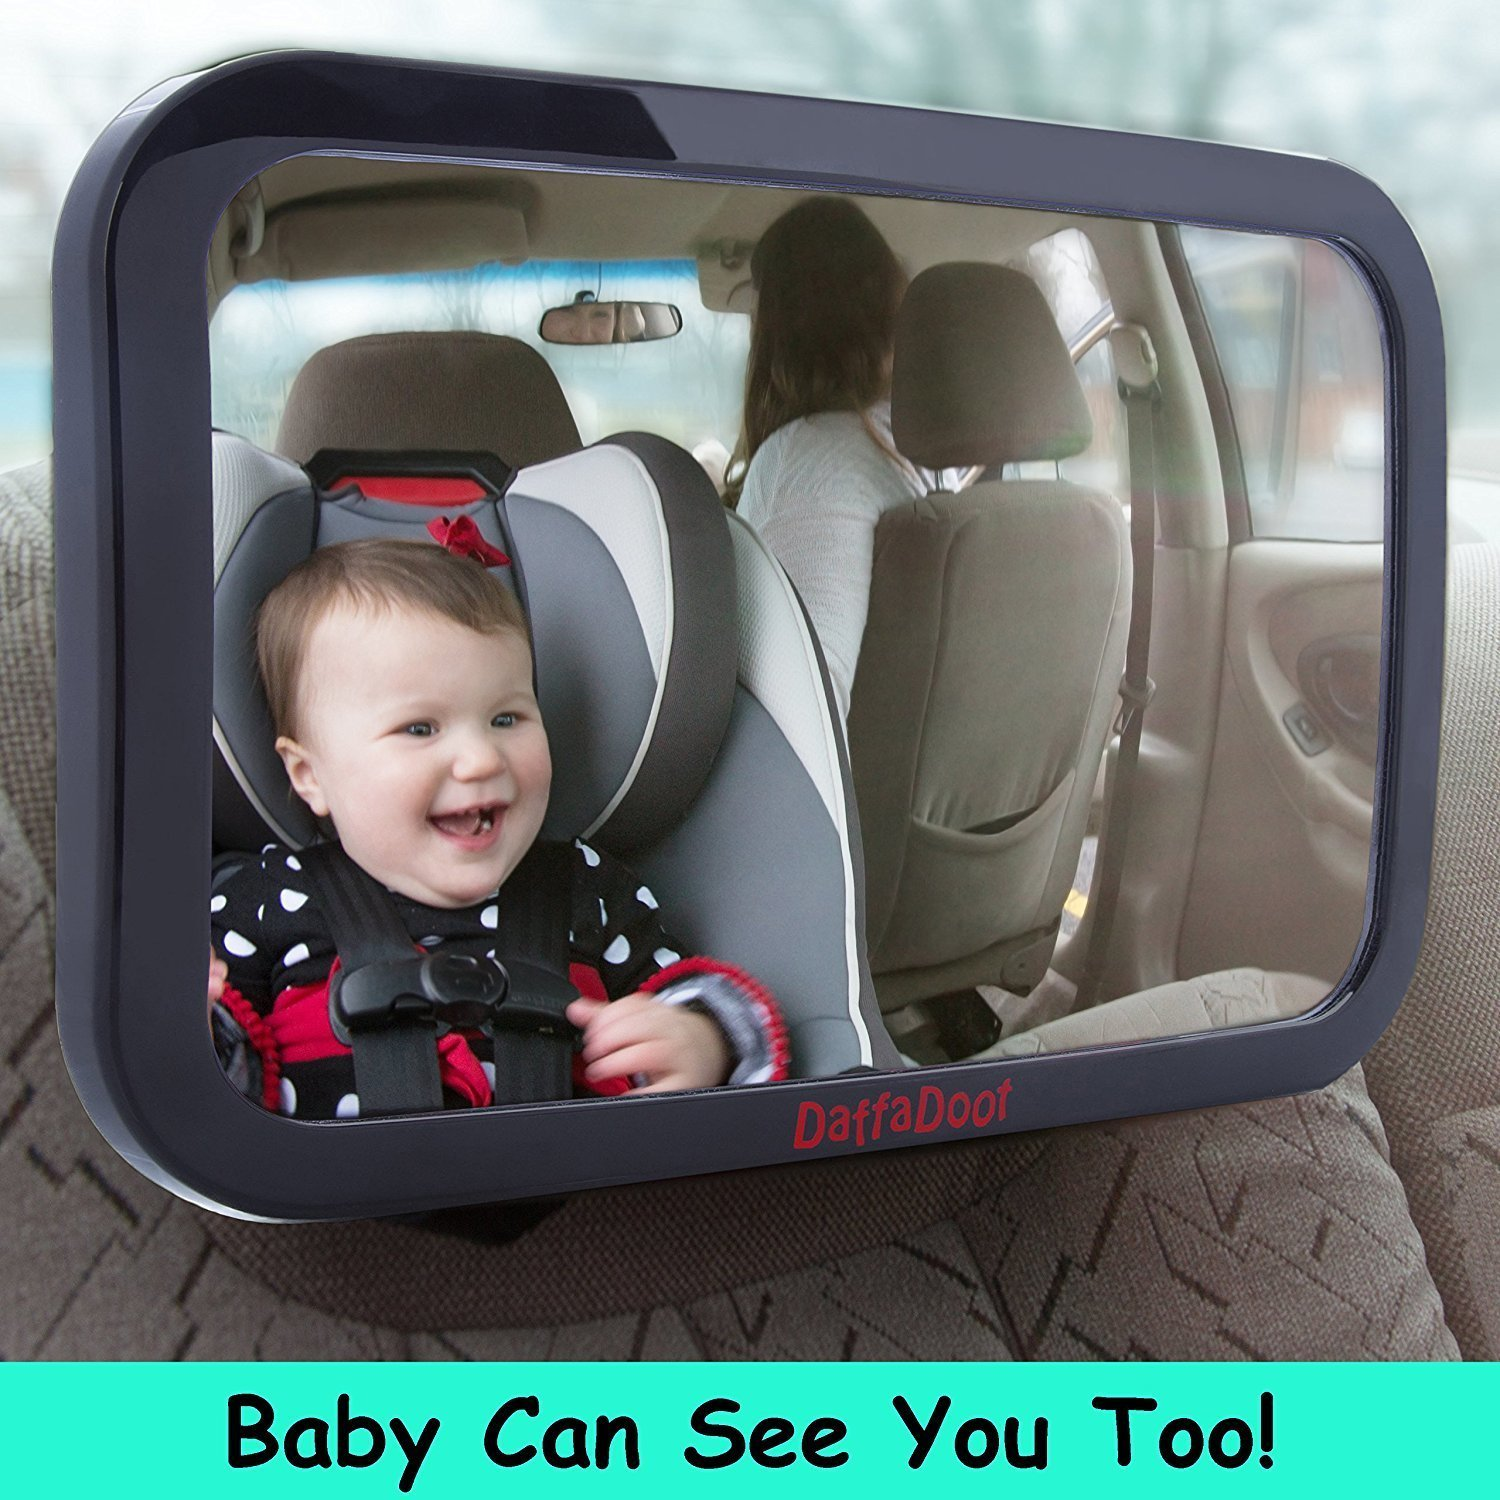 ​​DaffaDoot Baby Car Mirror